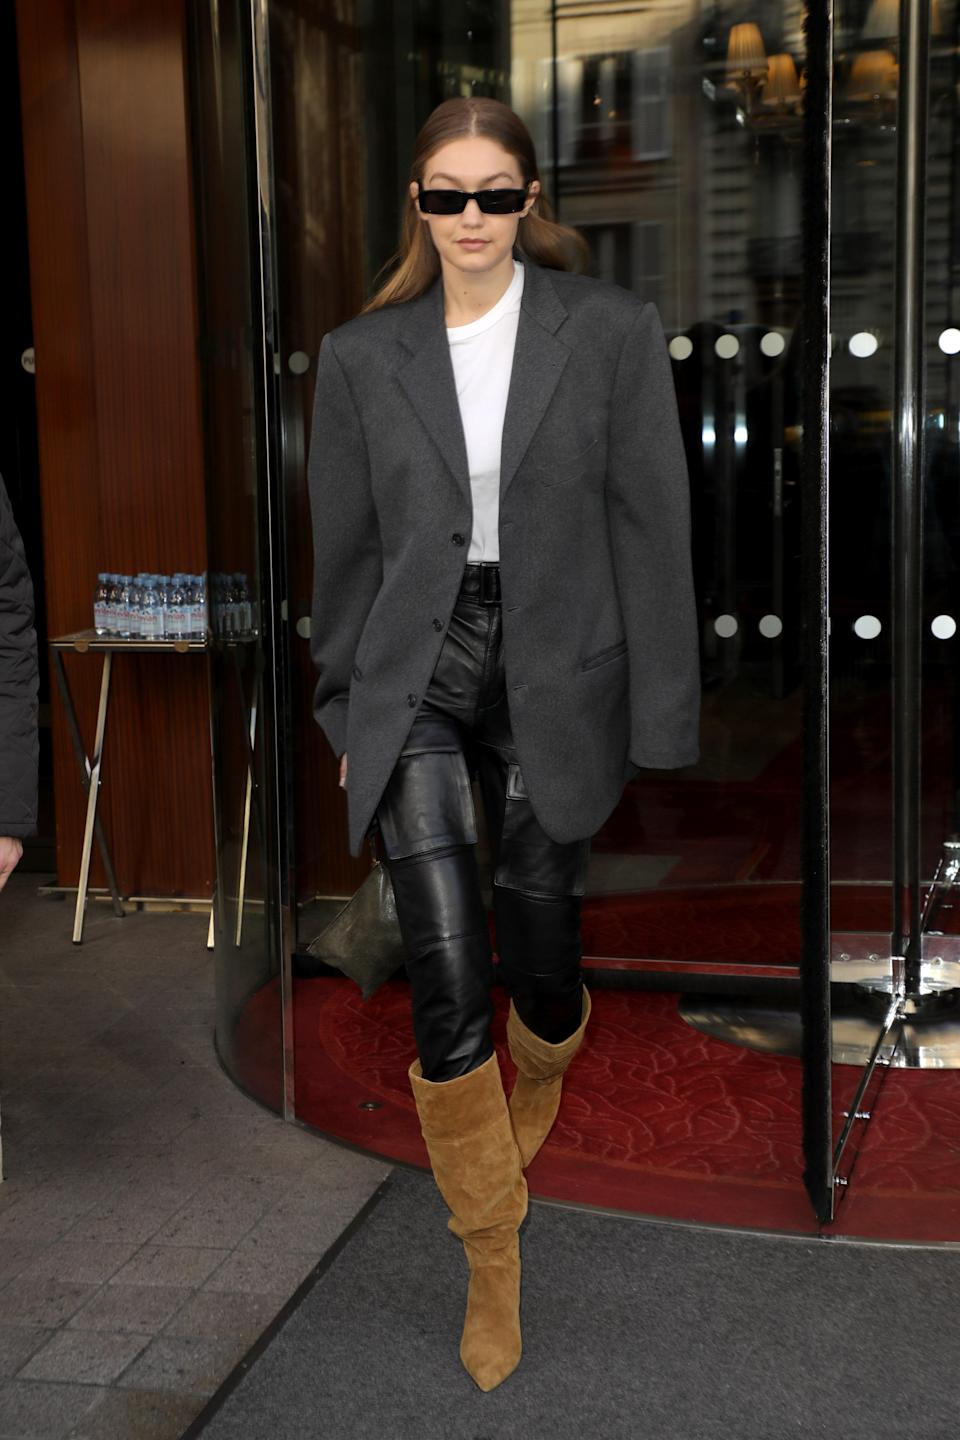 Another blazer plus pleater combo that gets an upgrade with the addition of tan boots.